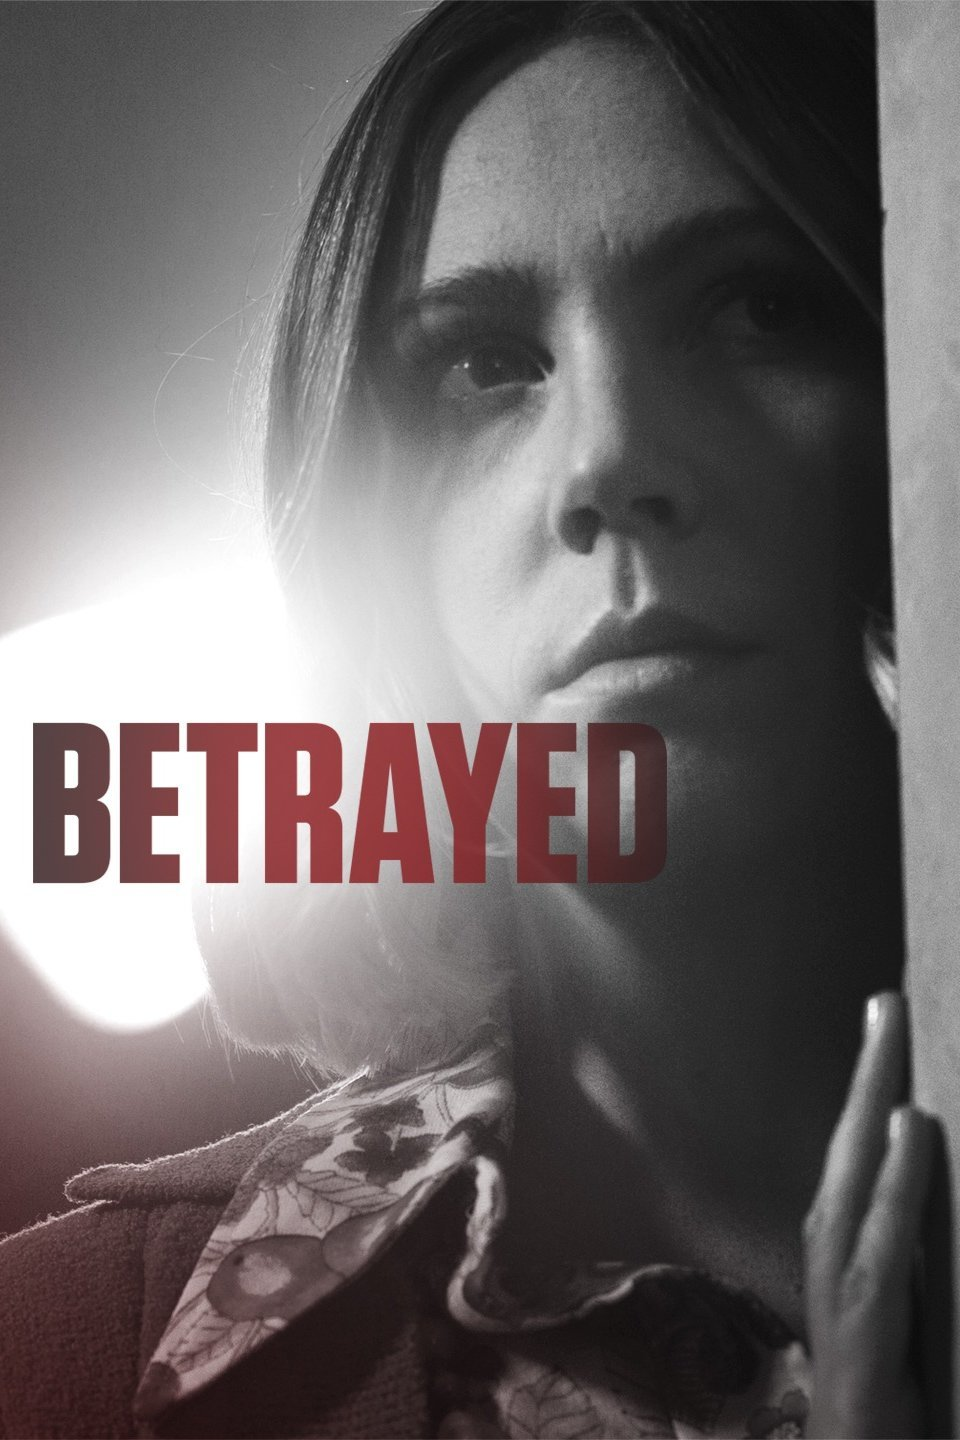 Betrayed movie naked confirm. join